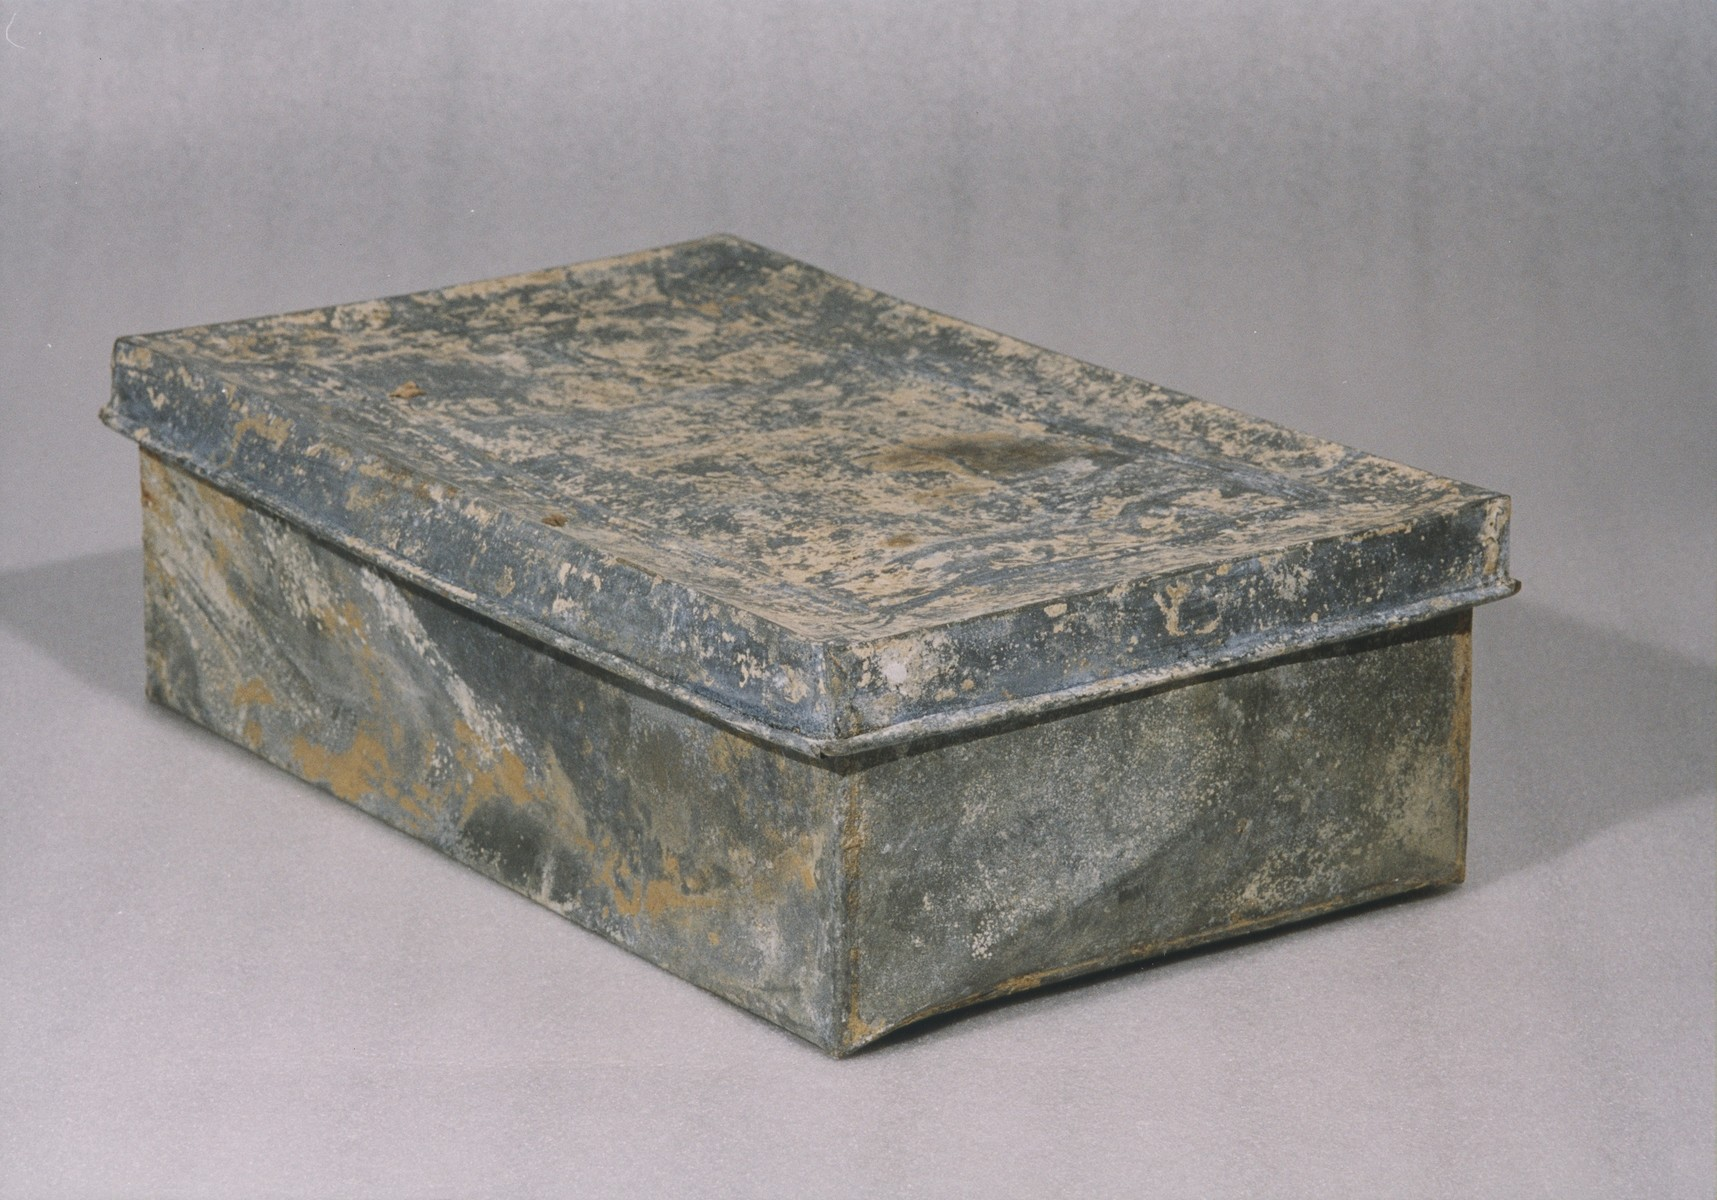 One of the ten metal boxes in which portions of the Ringelblum Oneg Shabbat archives were hidden and buried in the Warsaw ghetto.  The boxes are currently in the possession of the Jewish Historical Institute in Warsaw.